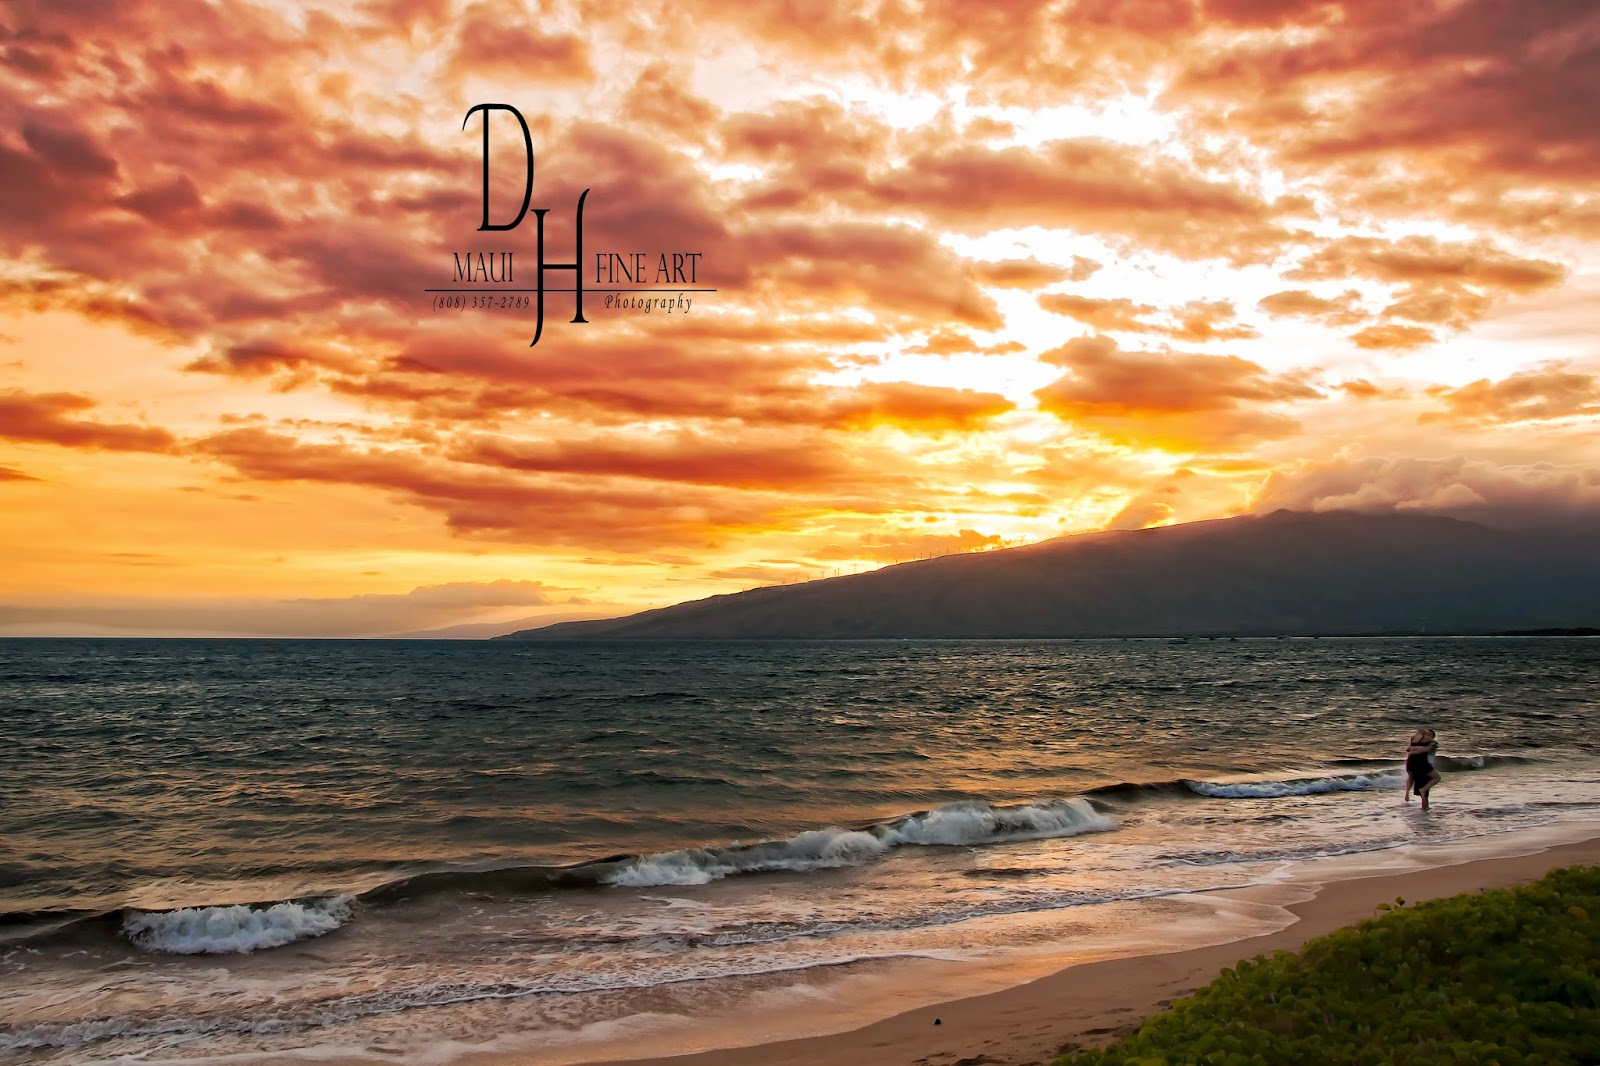 DH Maui Fine Art Photography Humans In Hawaii Maui Landscape